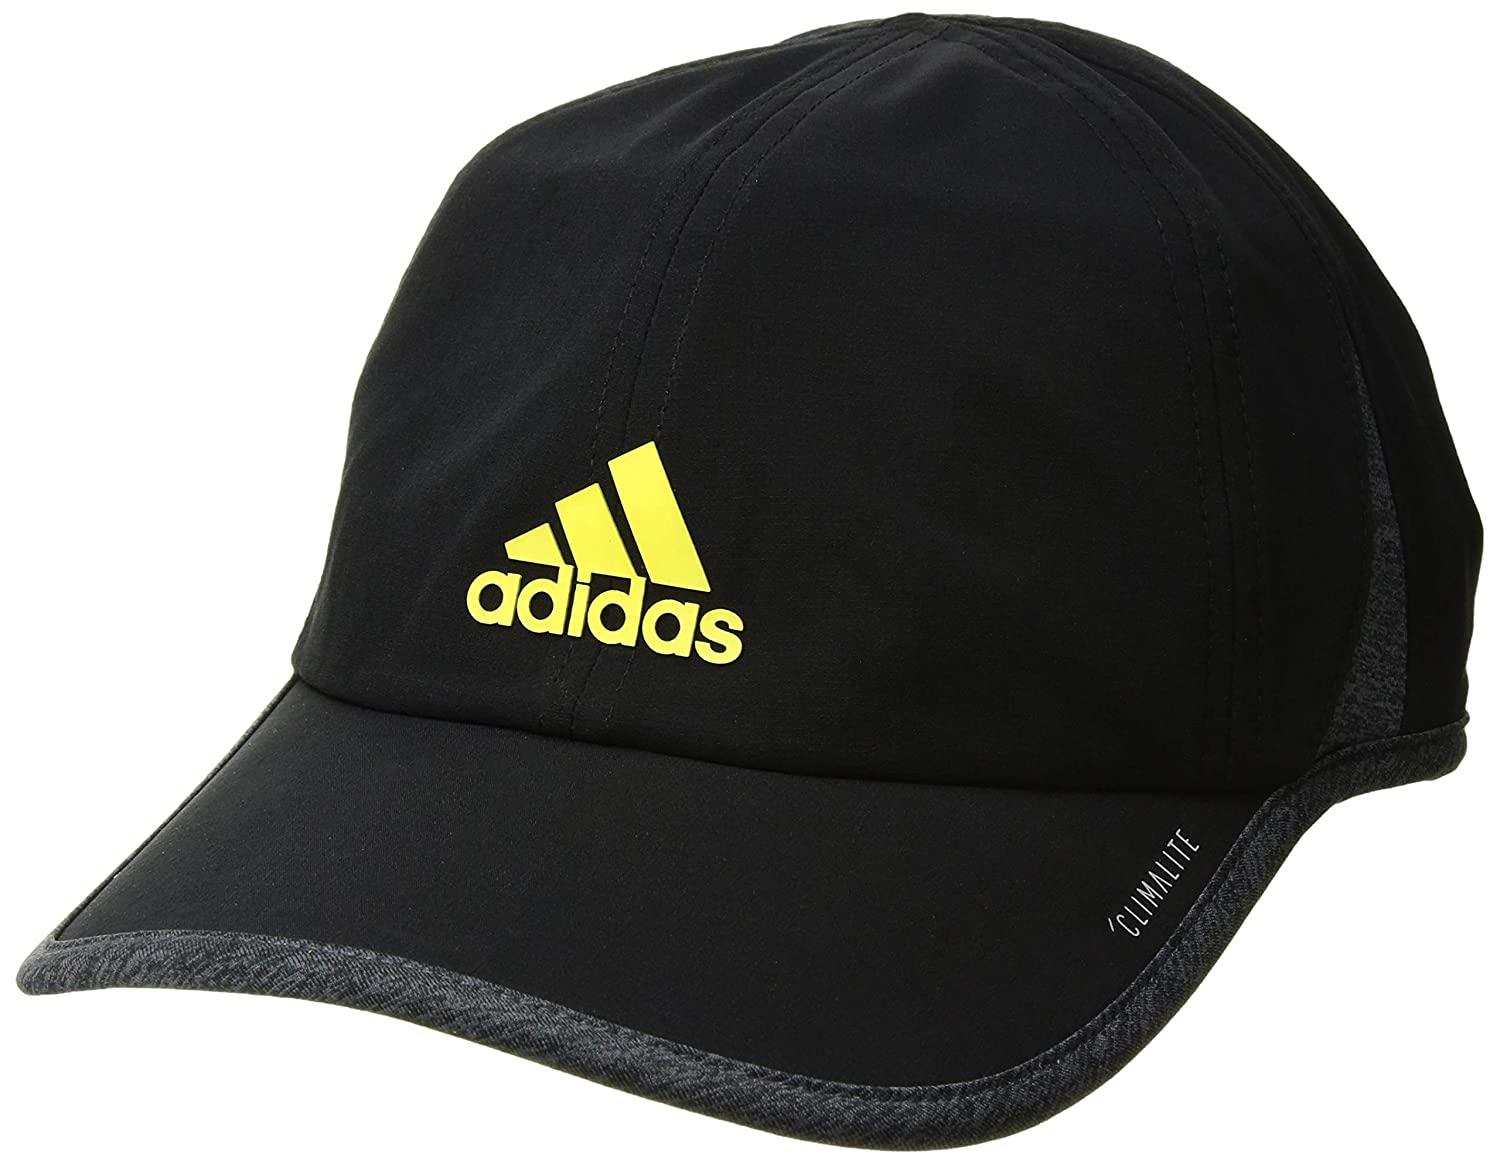 915c319b457 Amazon.com  adidas Men s Superlite Relaxed Adjustable Performance Cap   Sports   Outdoors